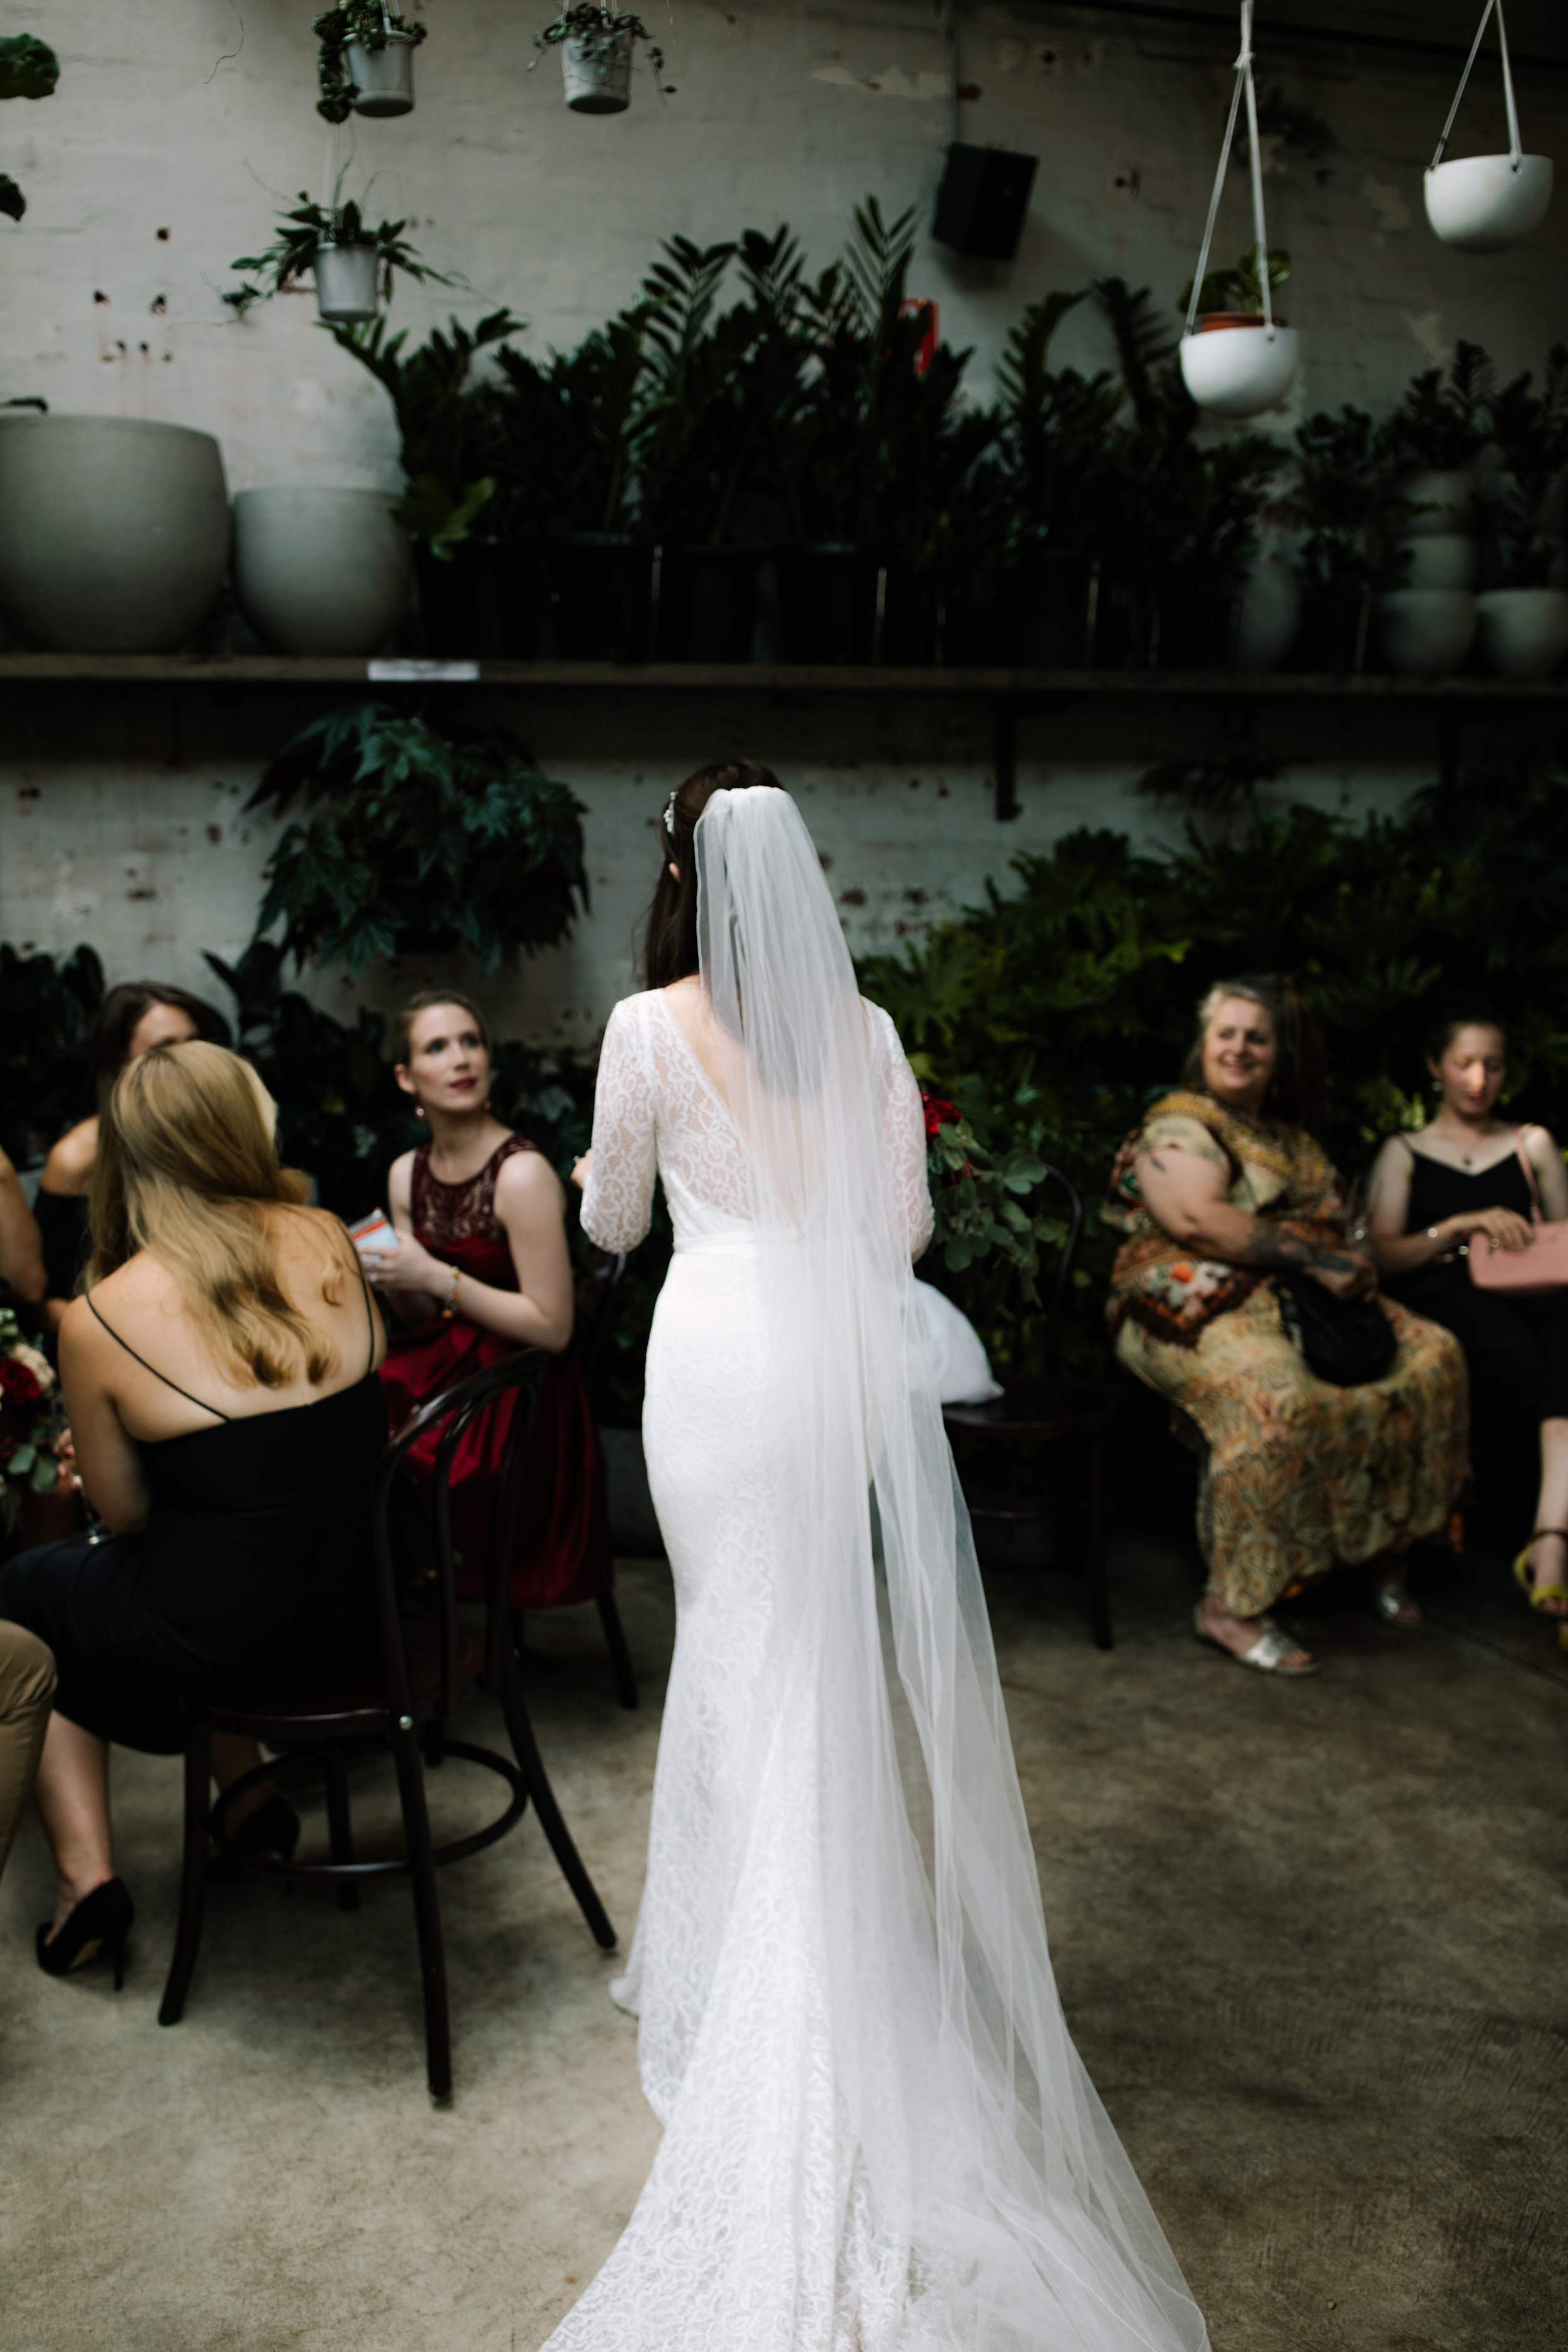 I_Got_You_Babe_Weddings_Emily_Matt_Rupert_Glasshaus_Melbourne0103.JPG